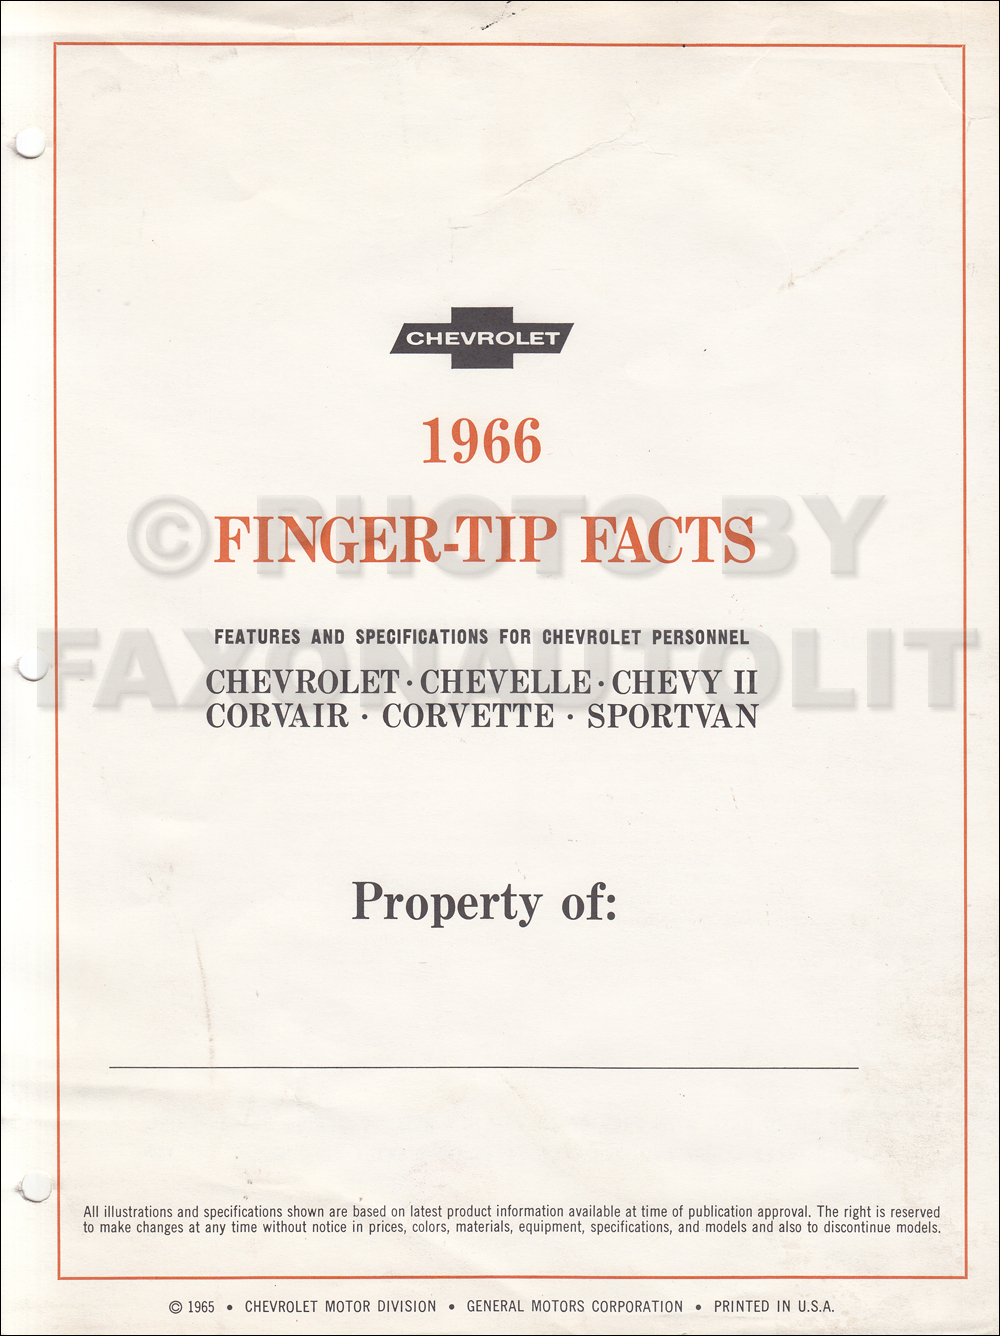 1966 Chevrolet Car Finger Tip Facts Book Dealer Album Original 1962 Chevy Wiring Diagram Manual Reprint Impala Ss Bel Air Biscayne